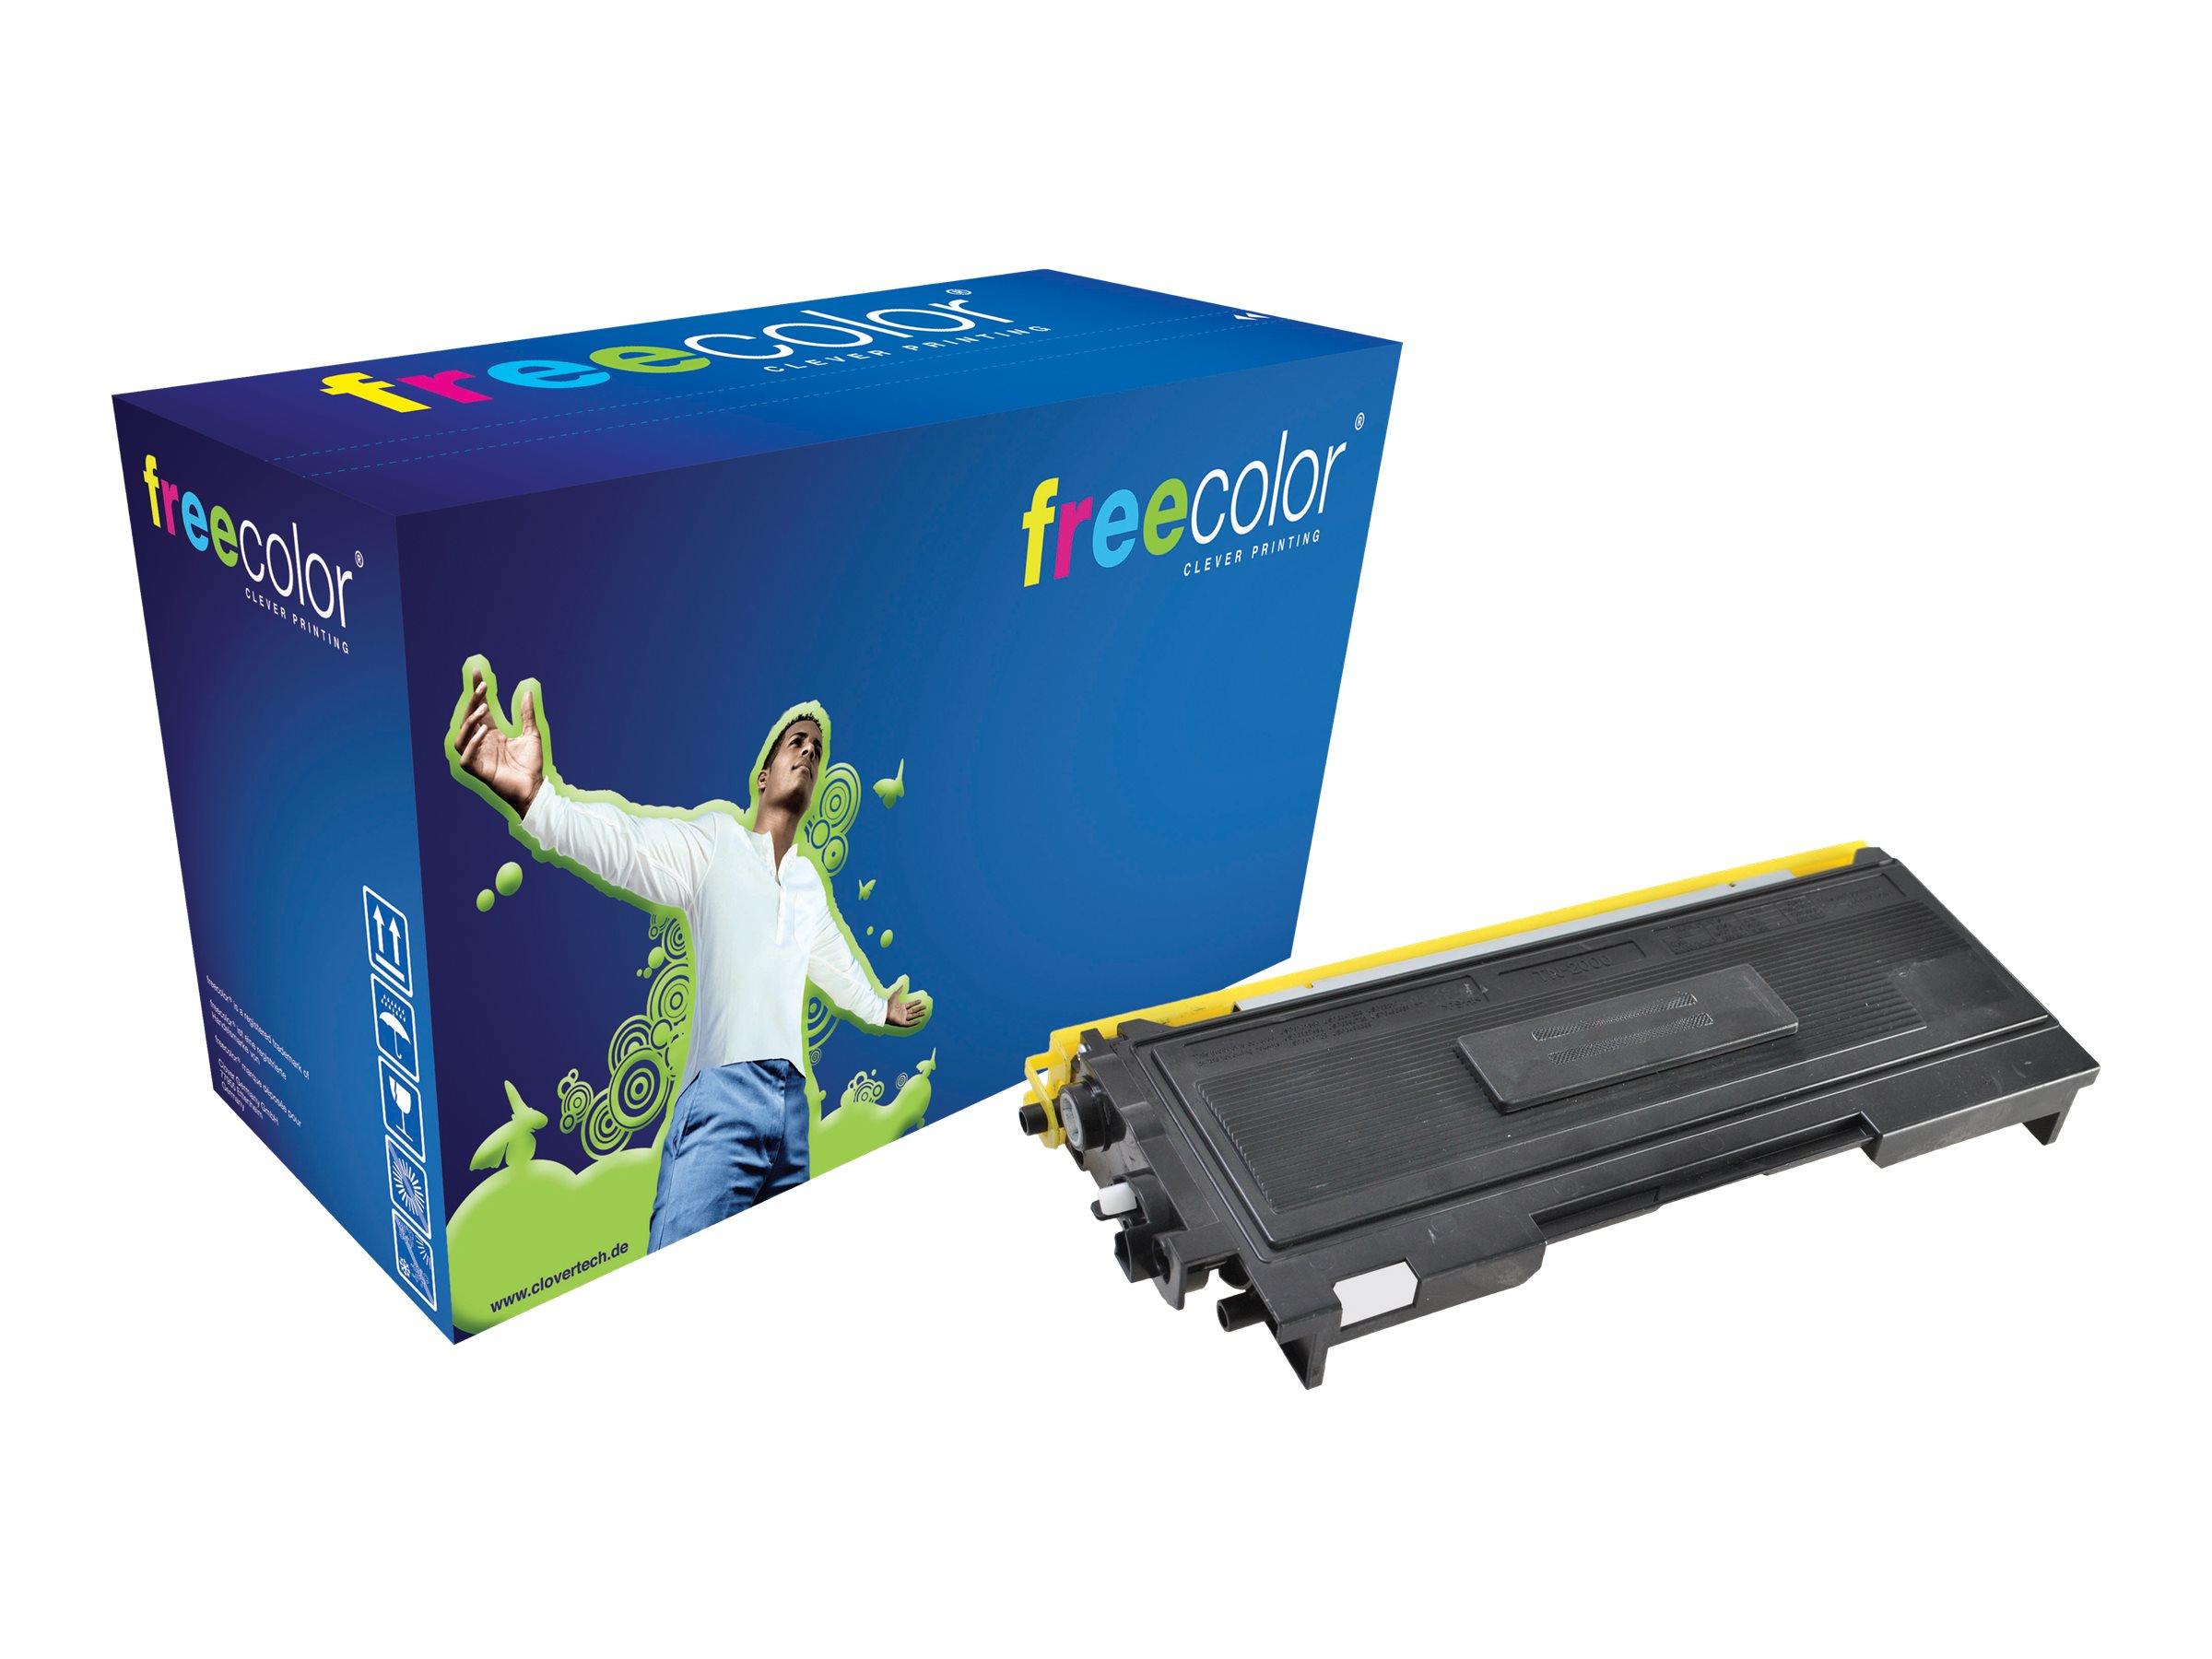 FREECOLOR - 90 g - Schwarz - Tonerpatrone (Alternative zu: Brother TN2000) - für Brother DCP-7010, DCP-7010L, DCP-7025, MFC-7225n, MFC-7420, MFC-7820N; FAX-2820, 2825